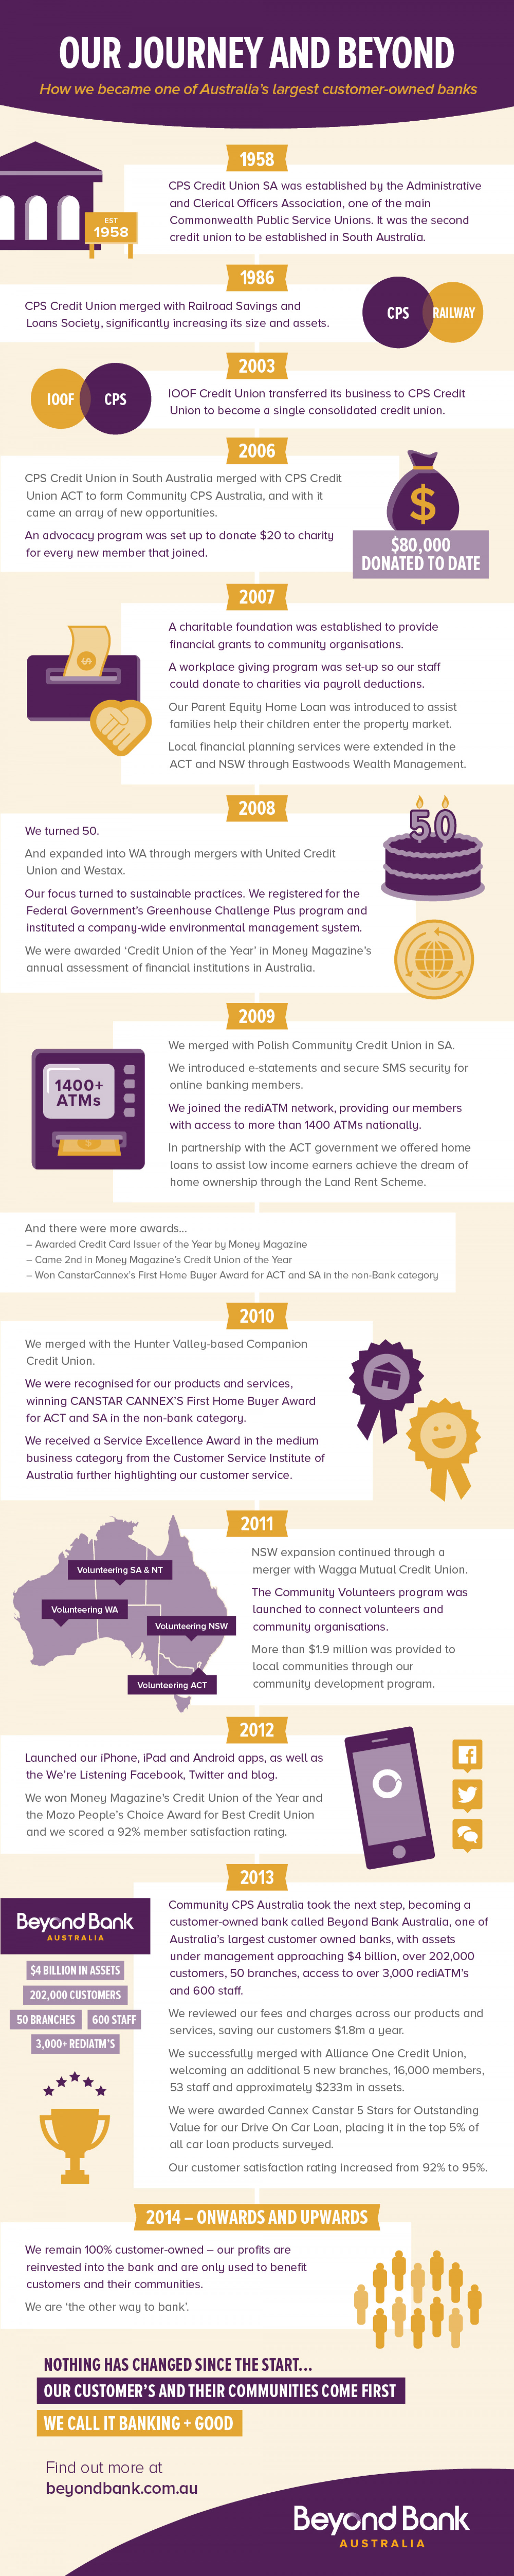 Our Journey and Beyond Infographic